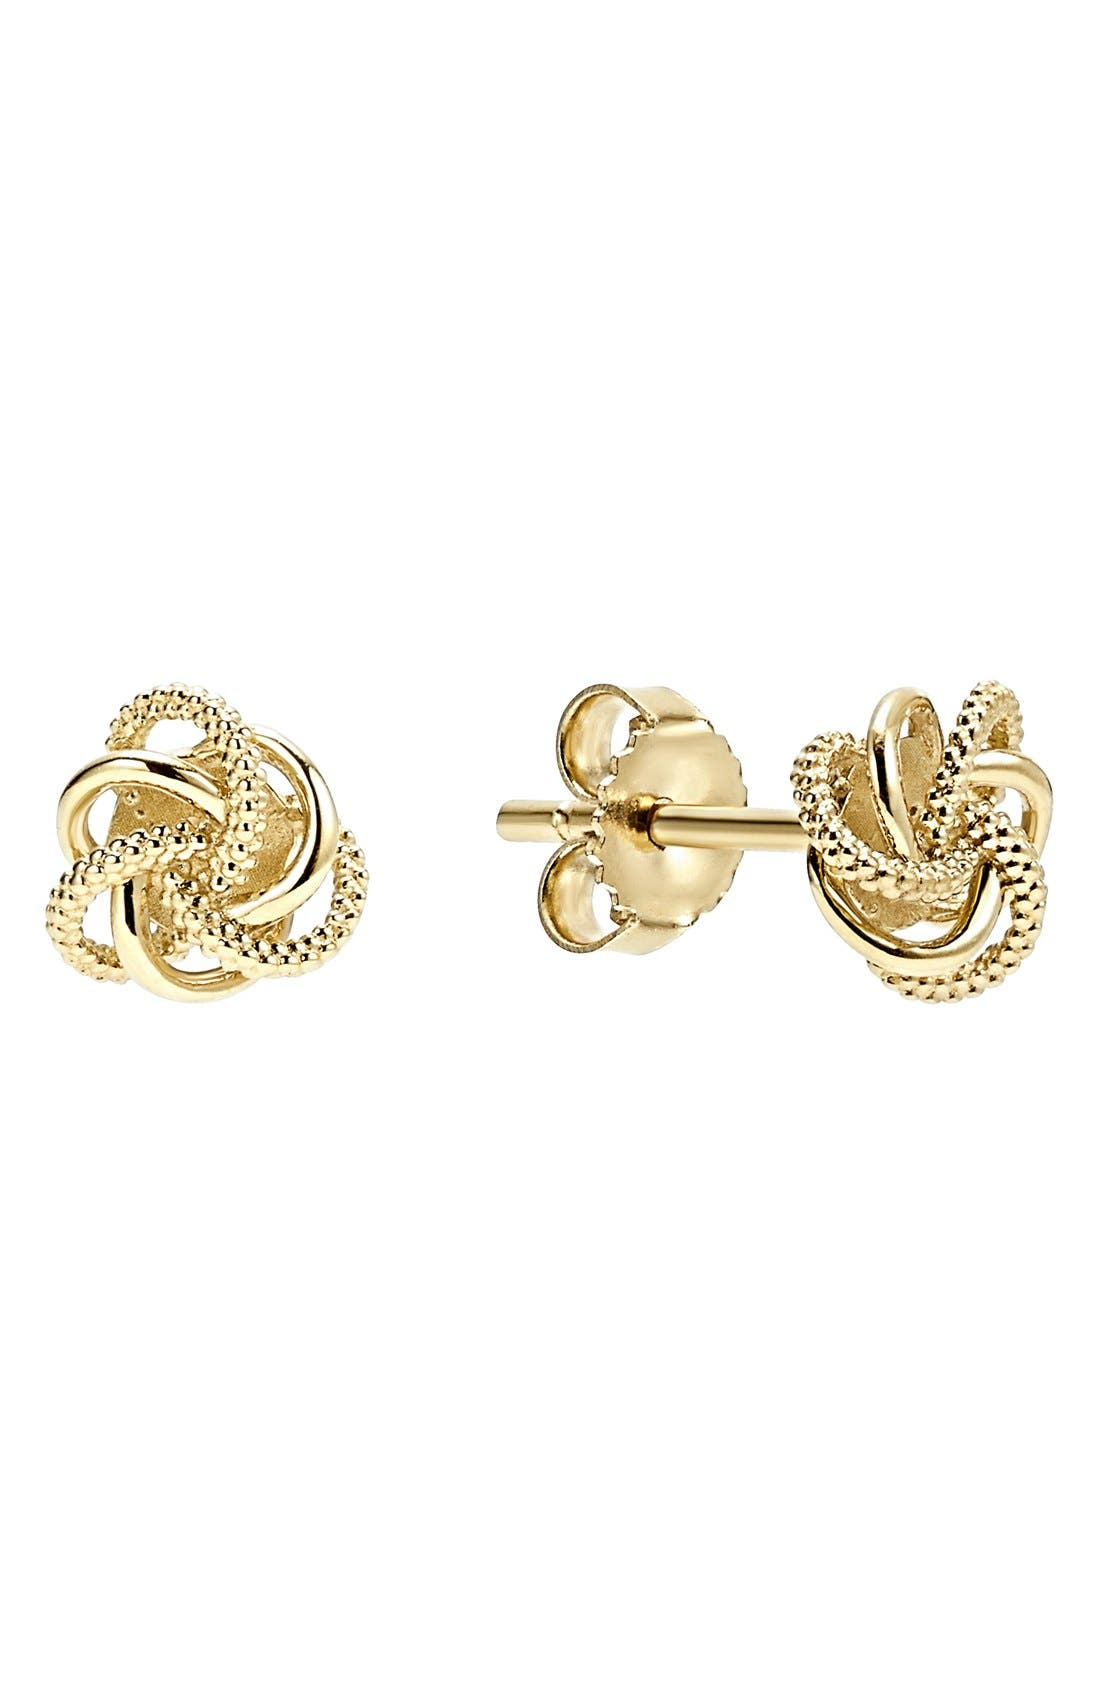 Lagos 'Love Knot' Stud Earrings